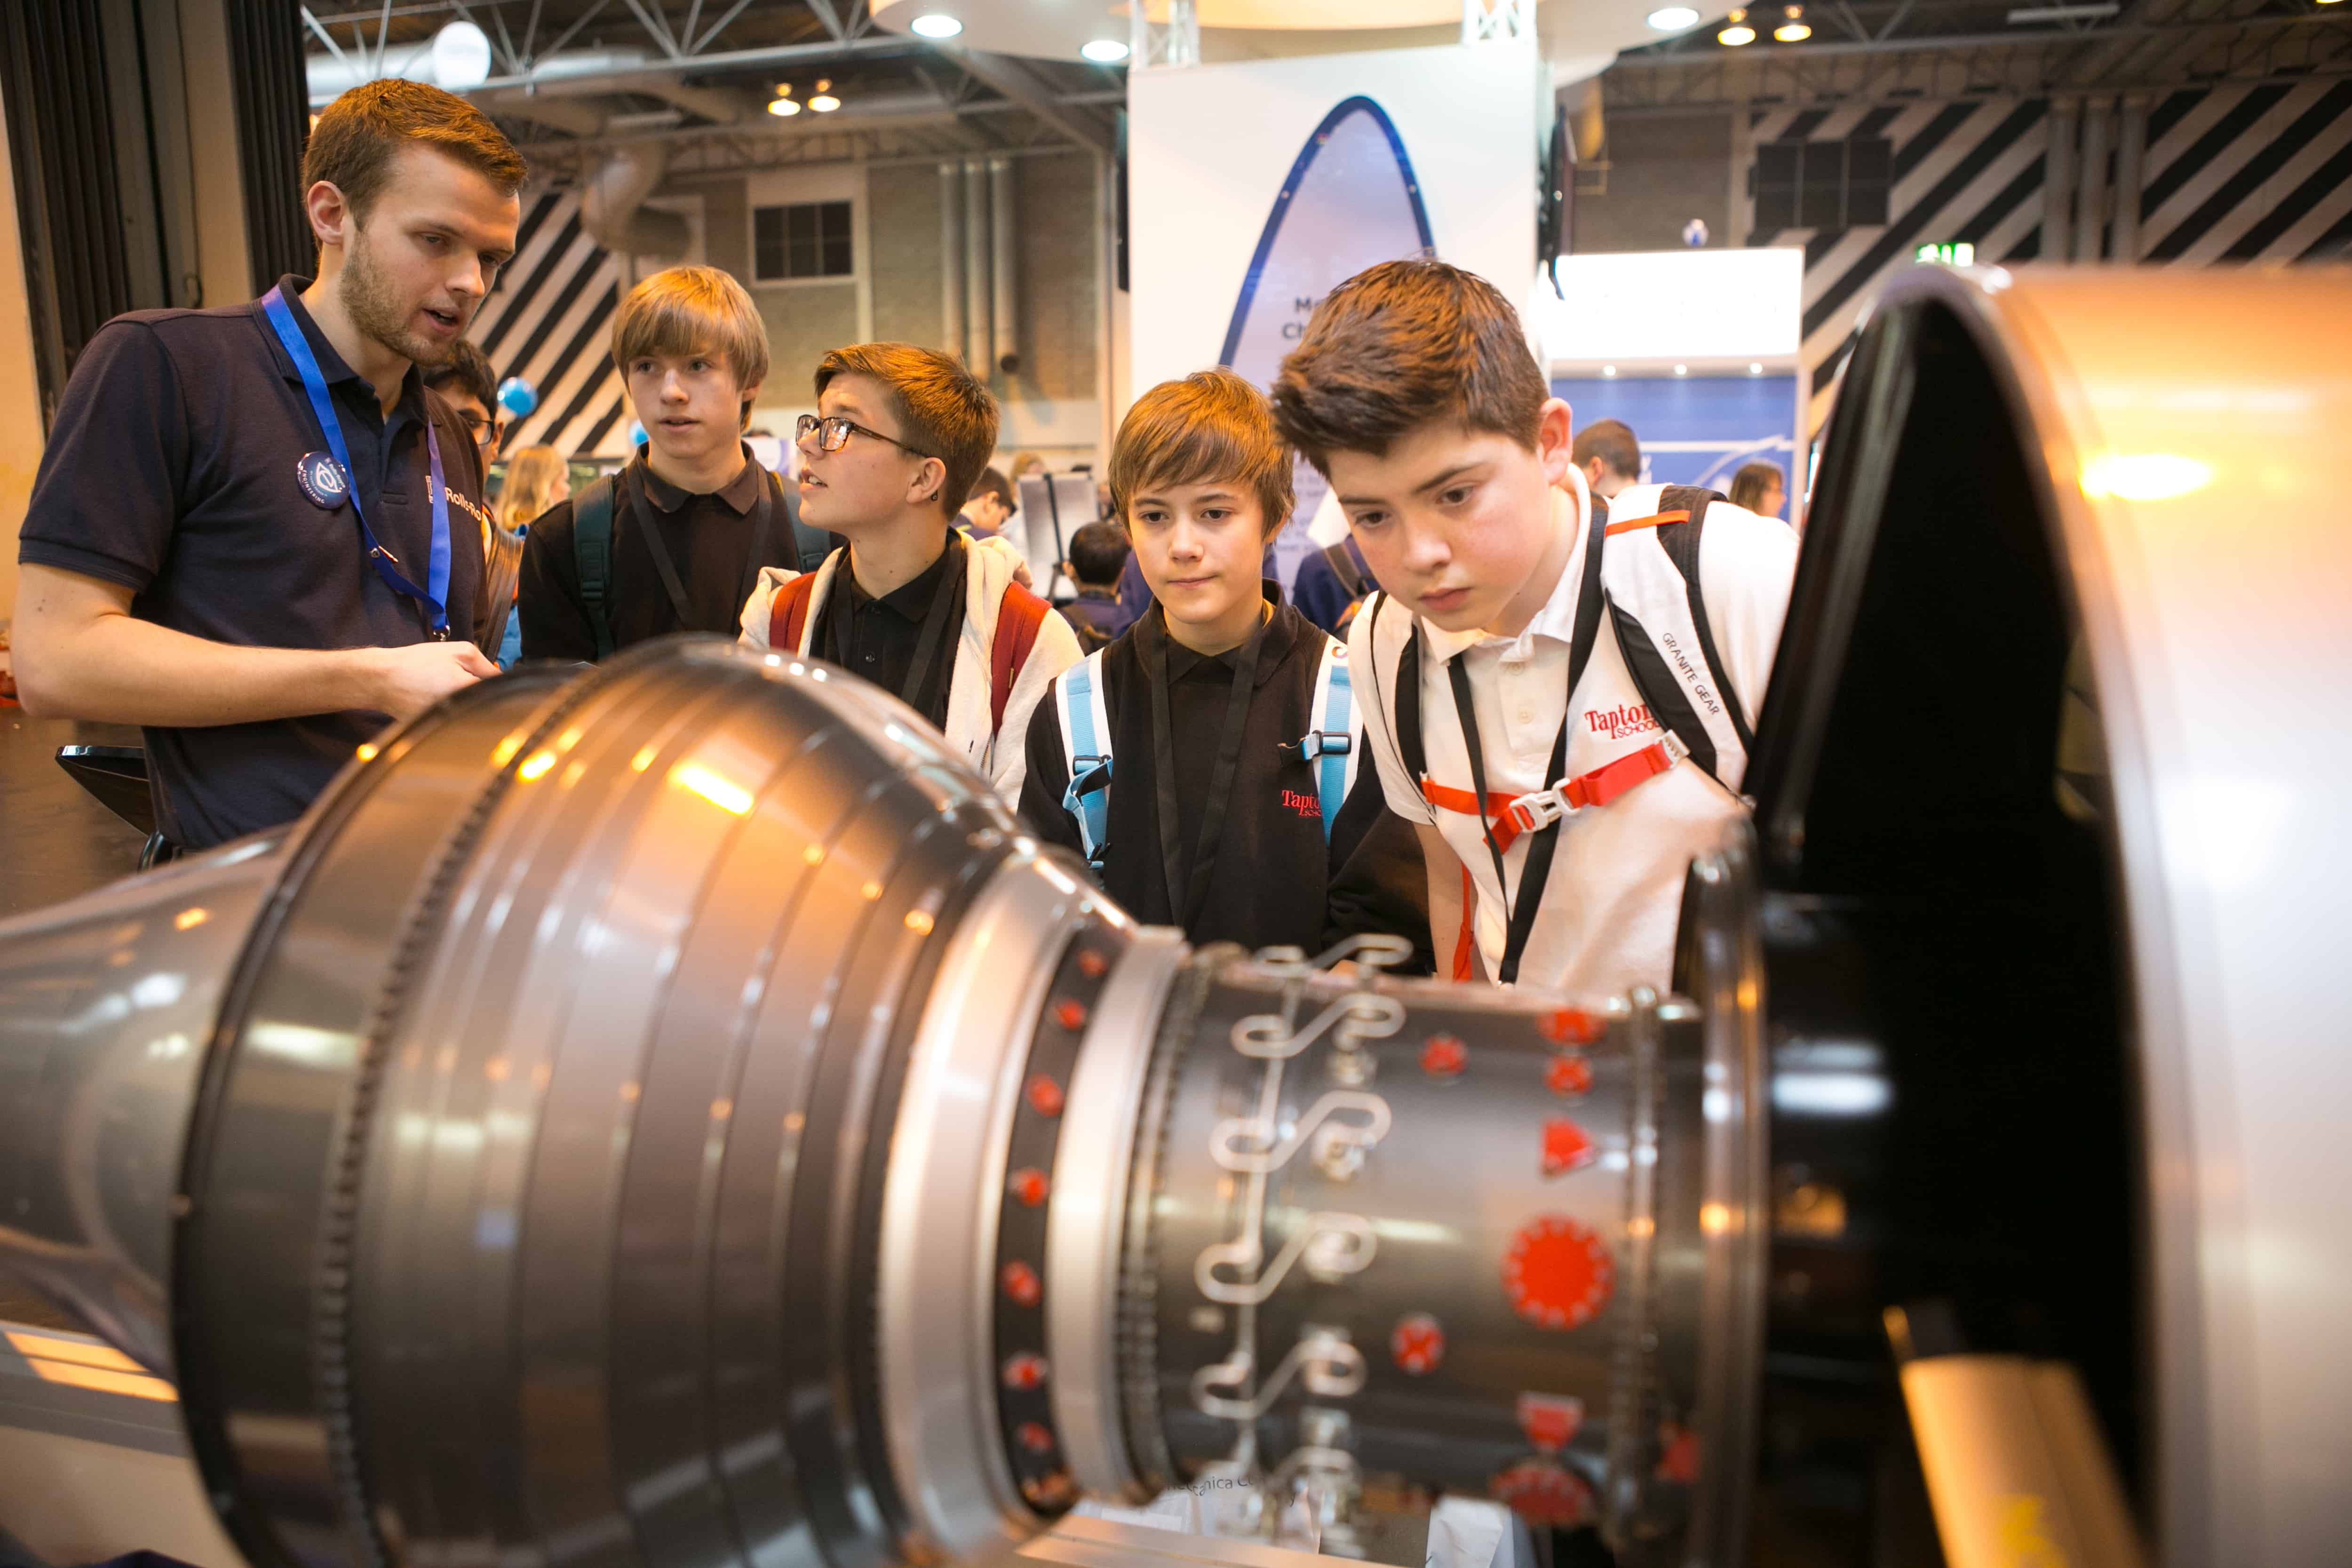 Budding engineers will be enthused by experts in a huge range of technologies at the Big Bang Fair